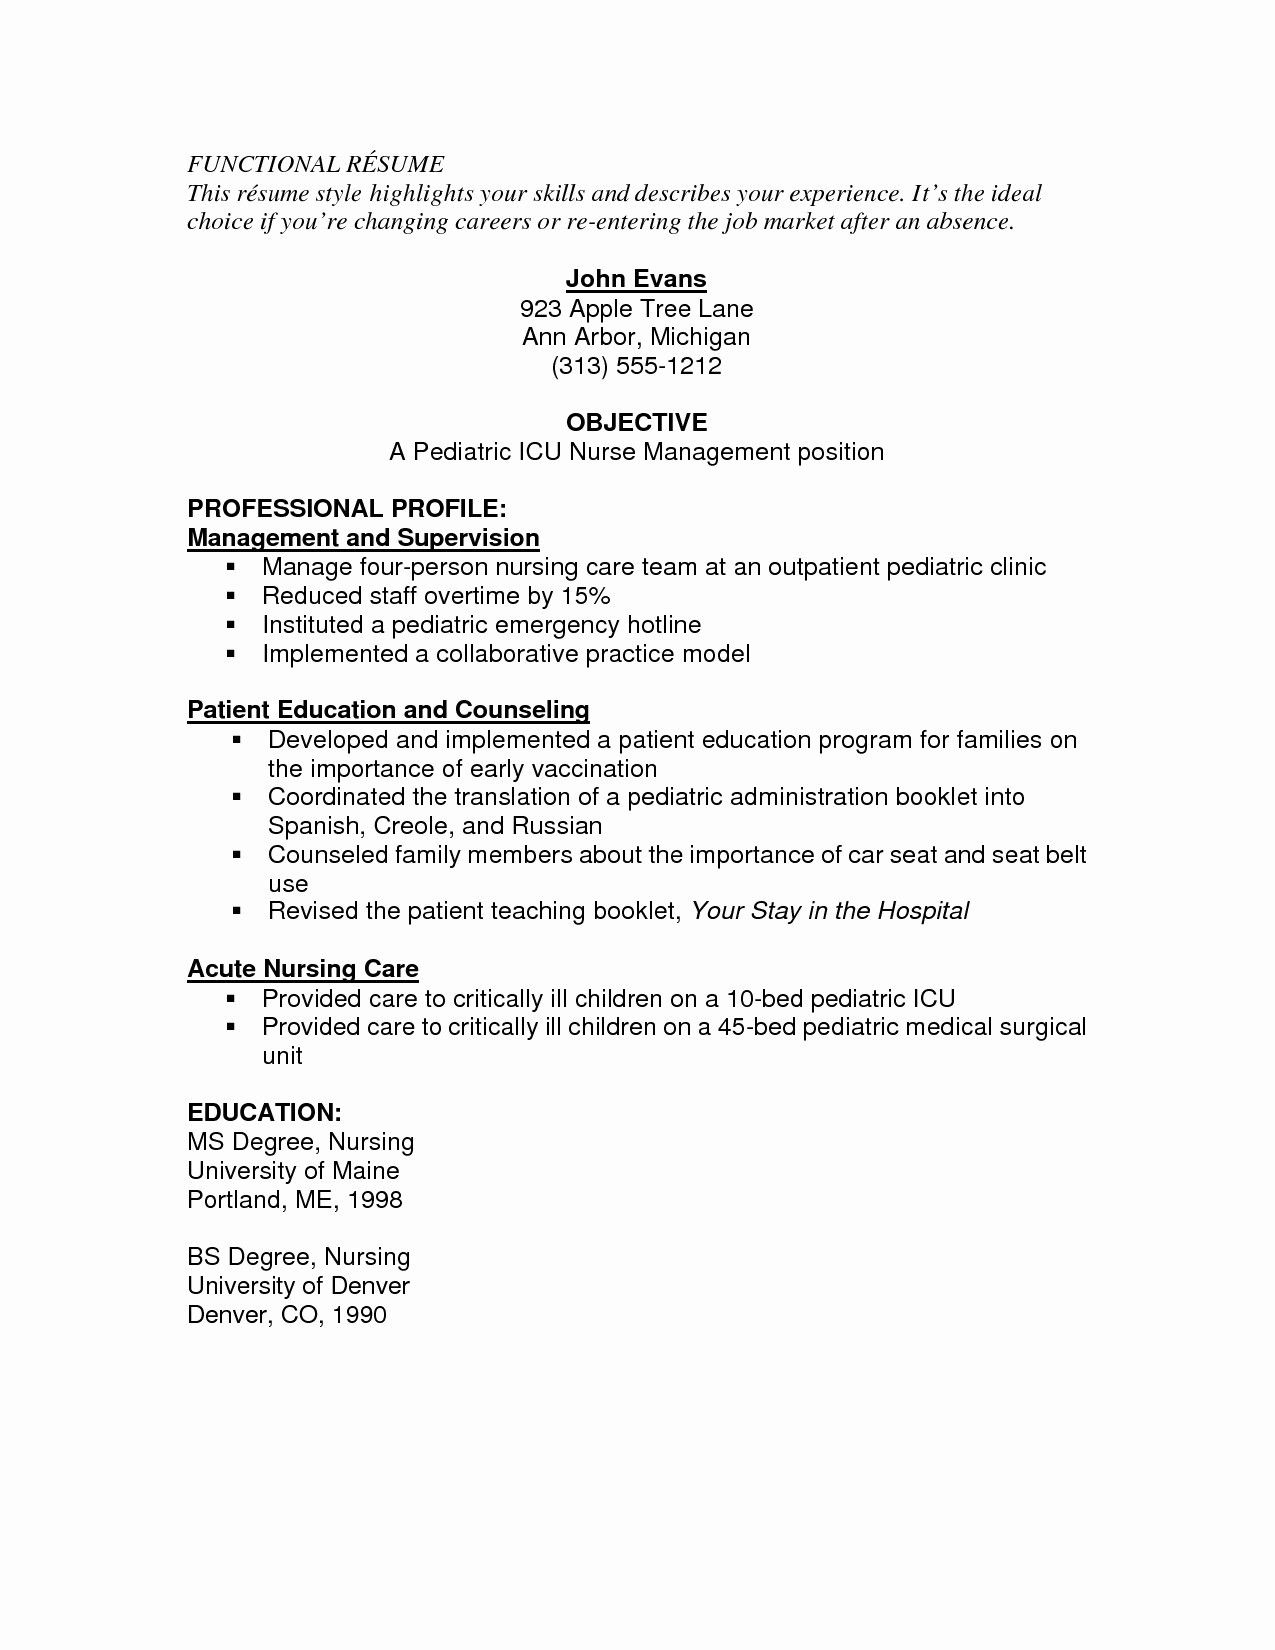 27 New Grad Rn Cover Letter With Images Nursing